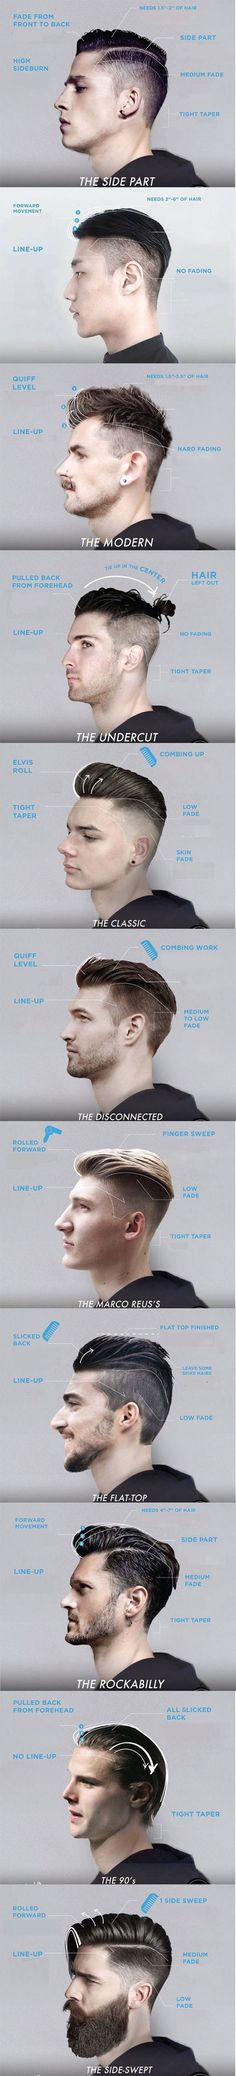 Undercut – Most Popular Hairstyle for Men